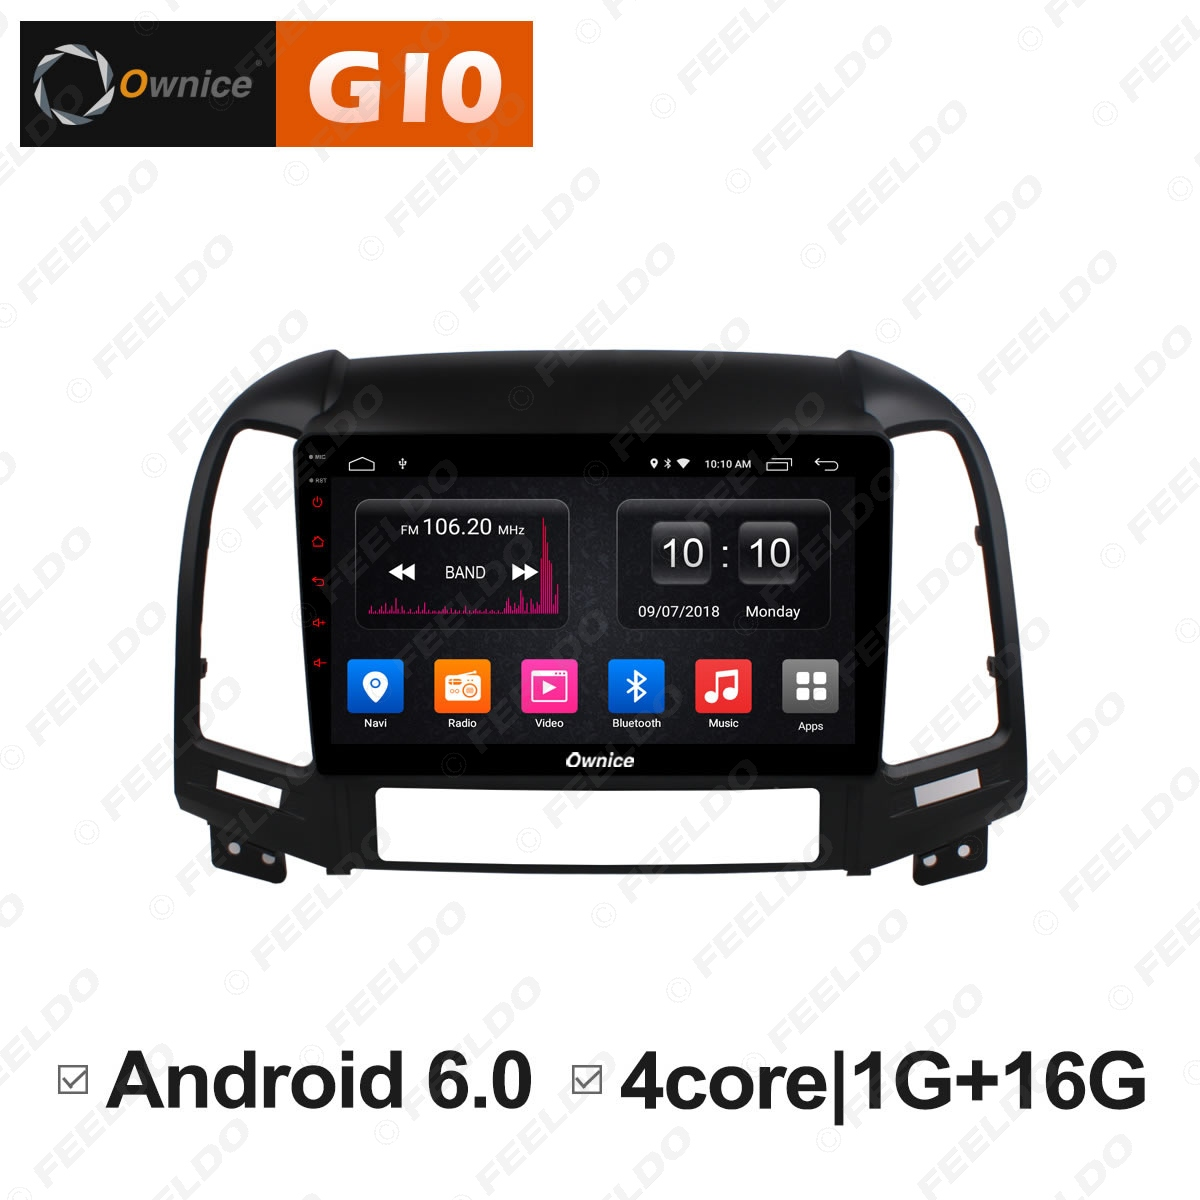 FEELDO 9 Android 6.0 4 Core/DDR3 1G/16G/Support 4G Dongle Car Media Player With GPS/FM/AM RDS Radio For Santa Fe 2007 2010